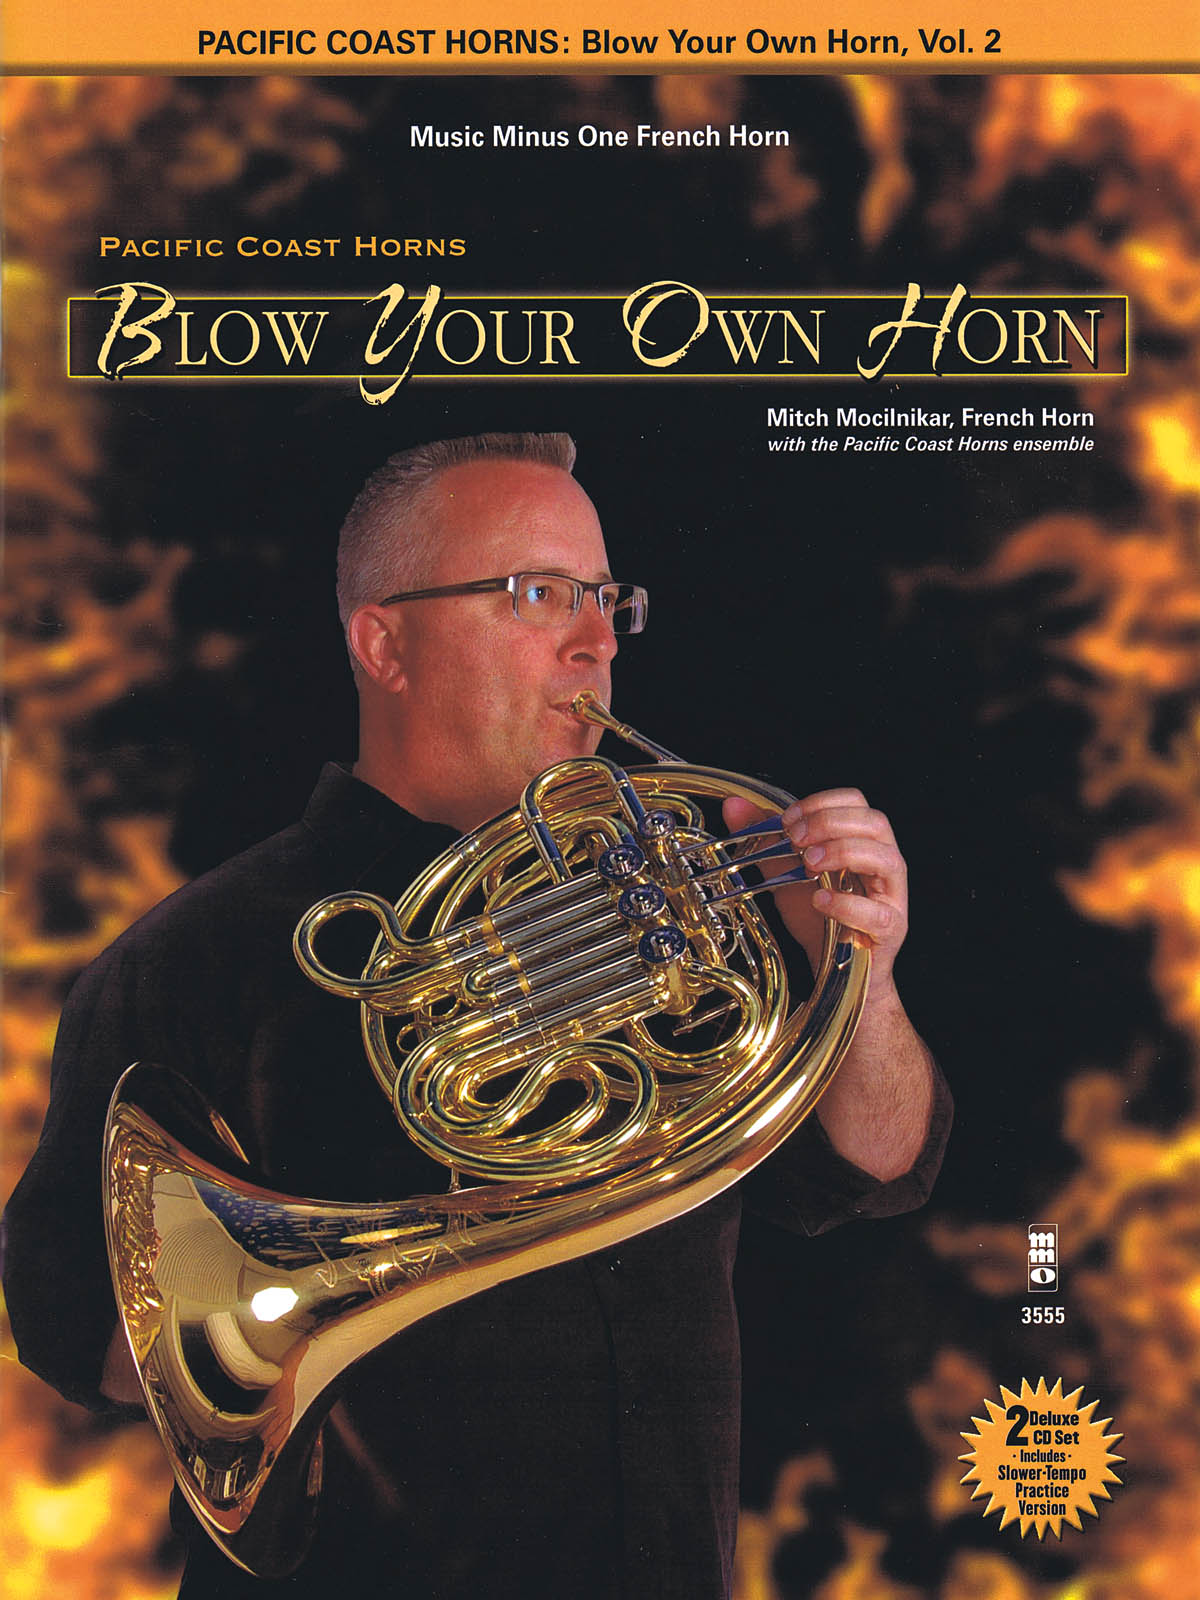 Pacific Coast Horns: Pacific Coast Horns - Blow Your Own Horn  Vol. 2: French